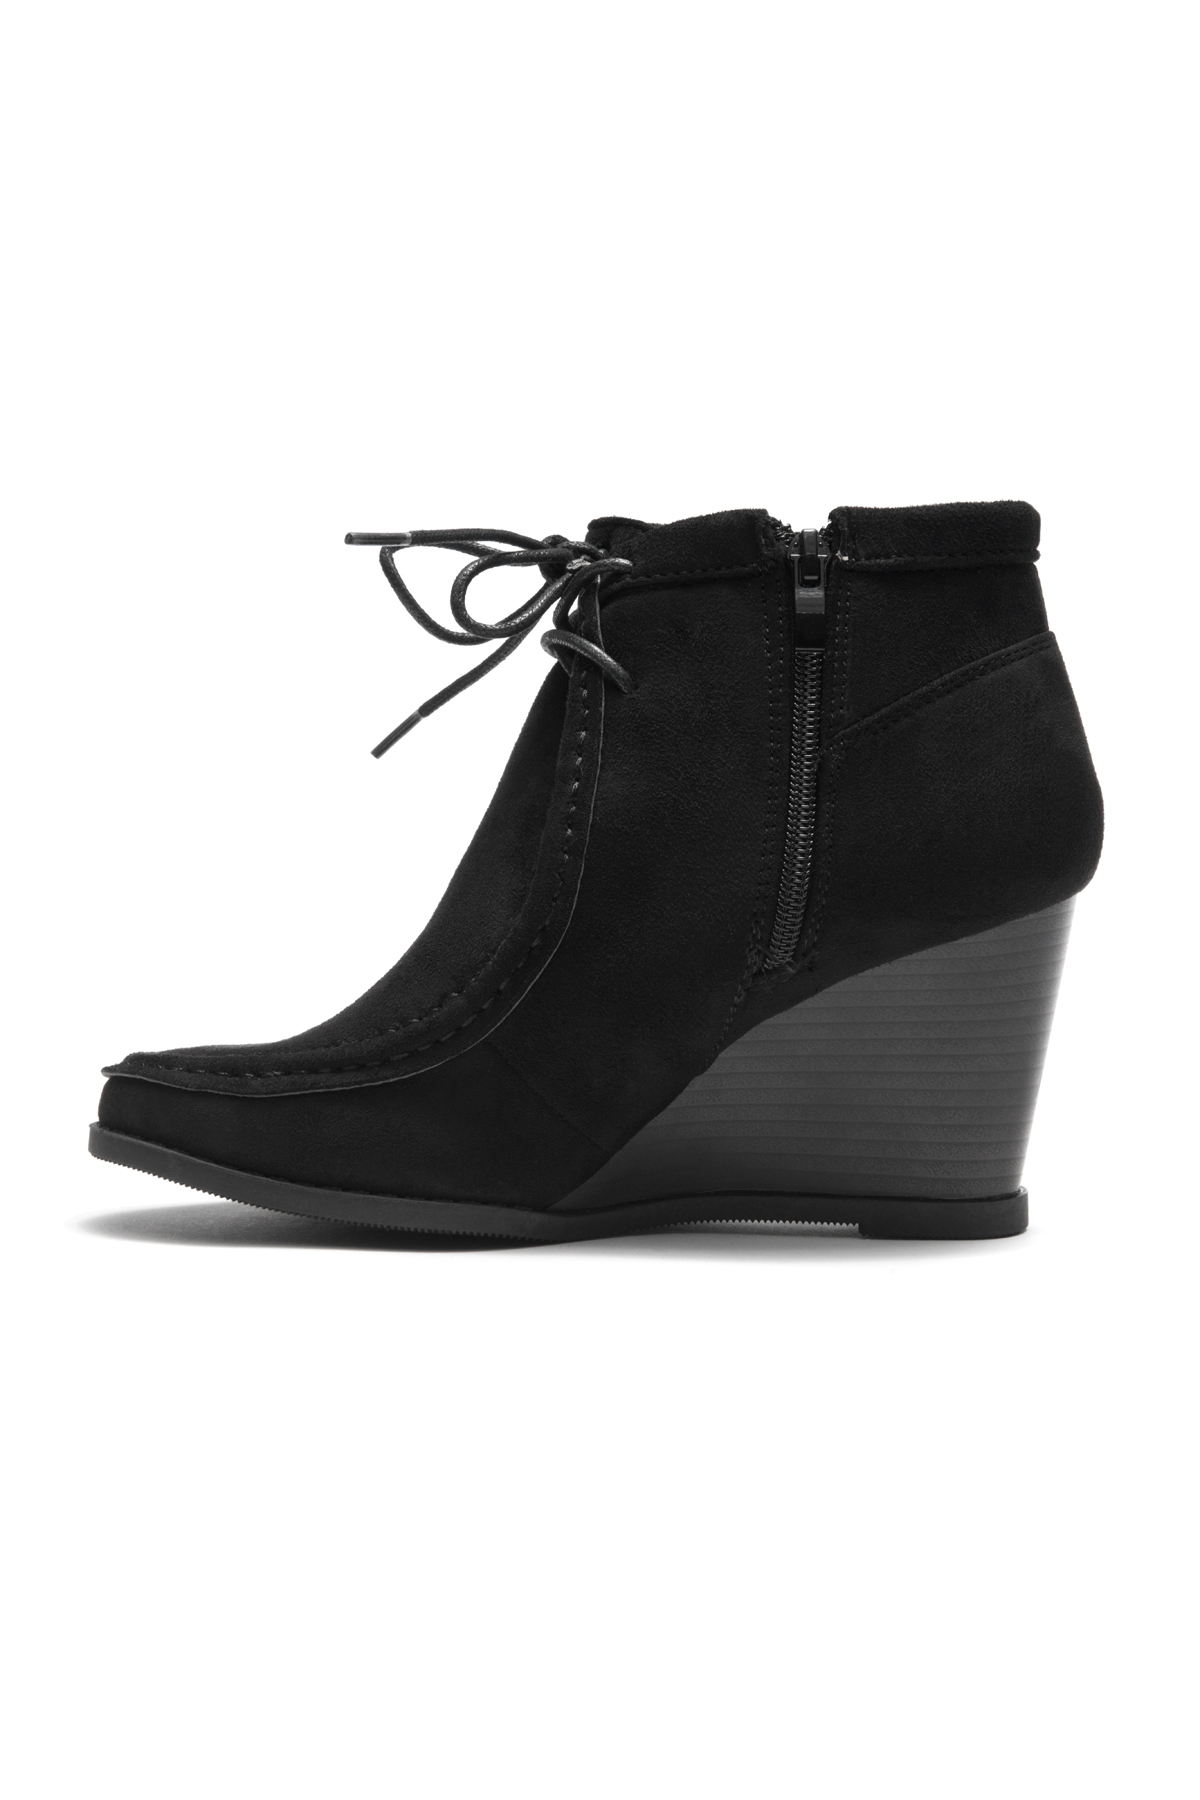 050af2fc6fa0 HerStyle Women s Eaddy Ysabel Lace-up Wedge Chukka Boot(Black)